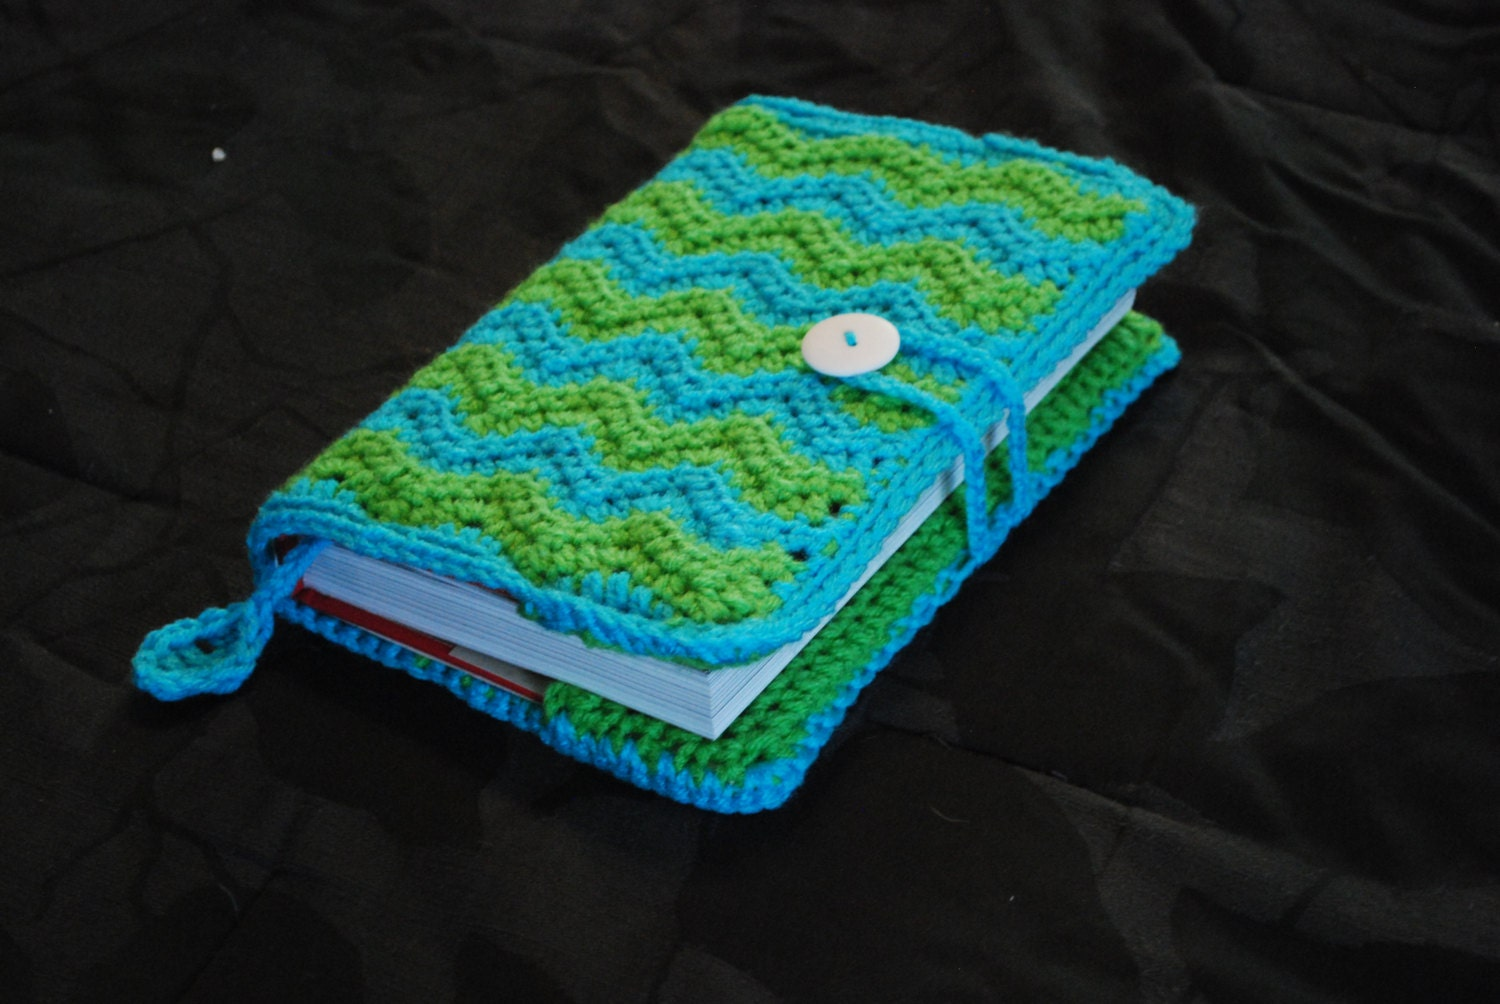 Crochet A Book Cover : Crochet book cover chevron pattern with loop and button